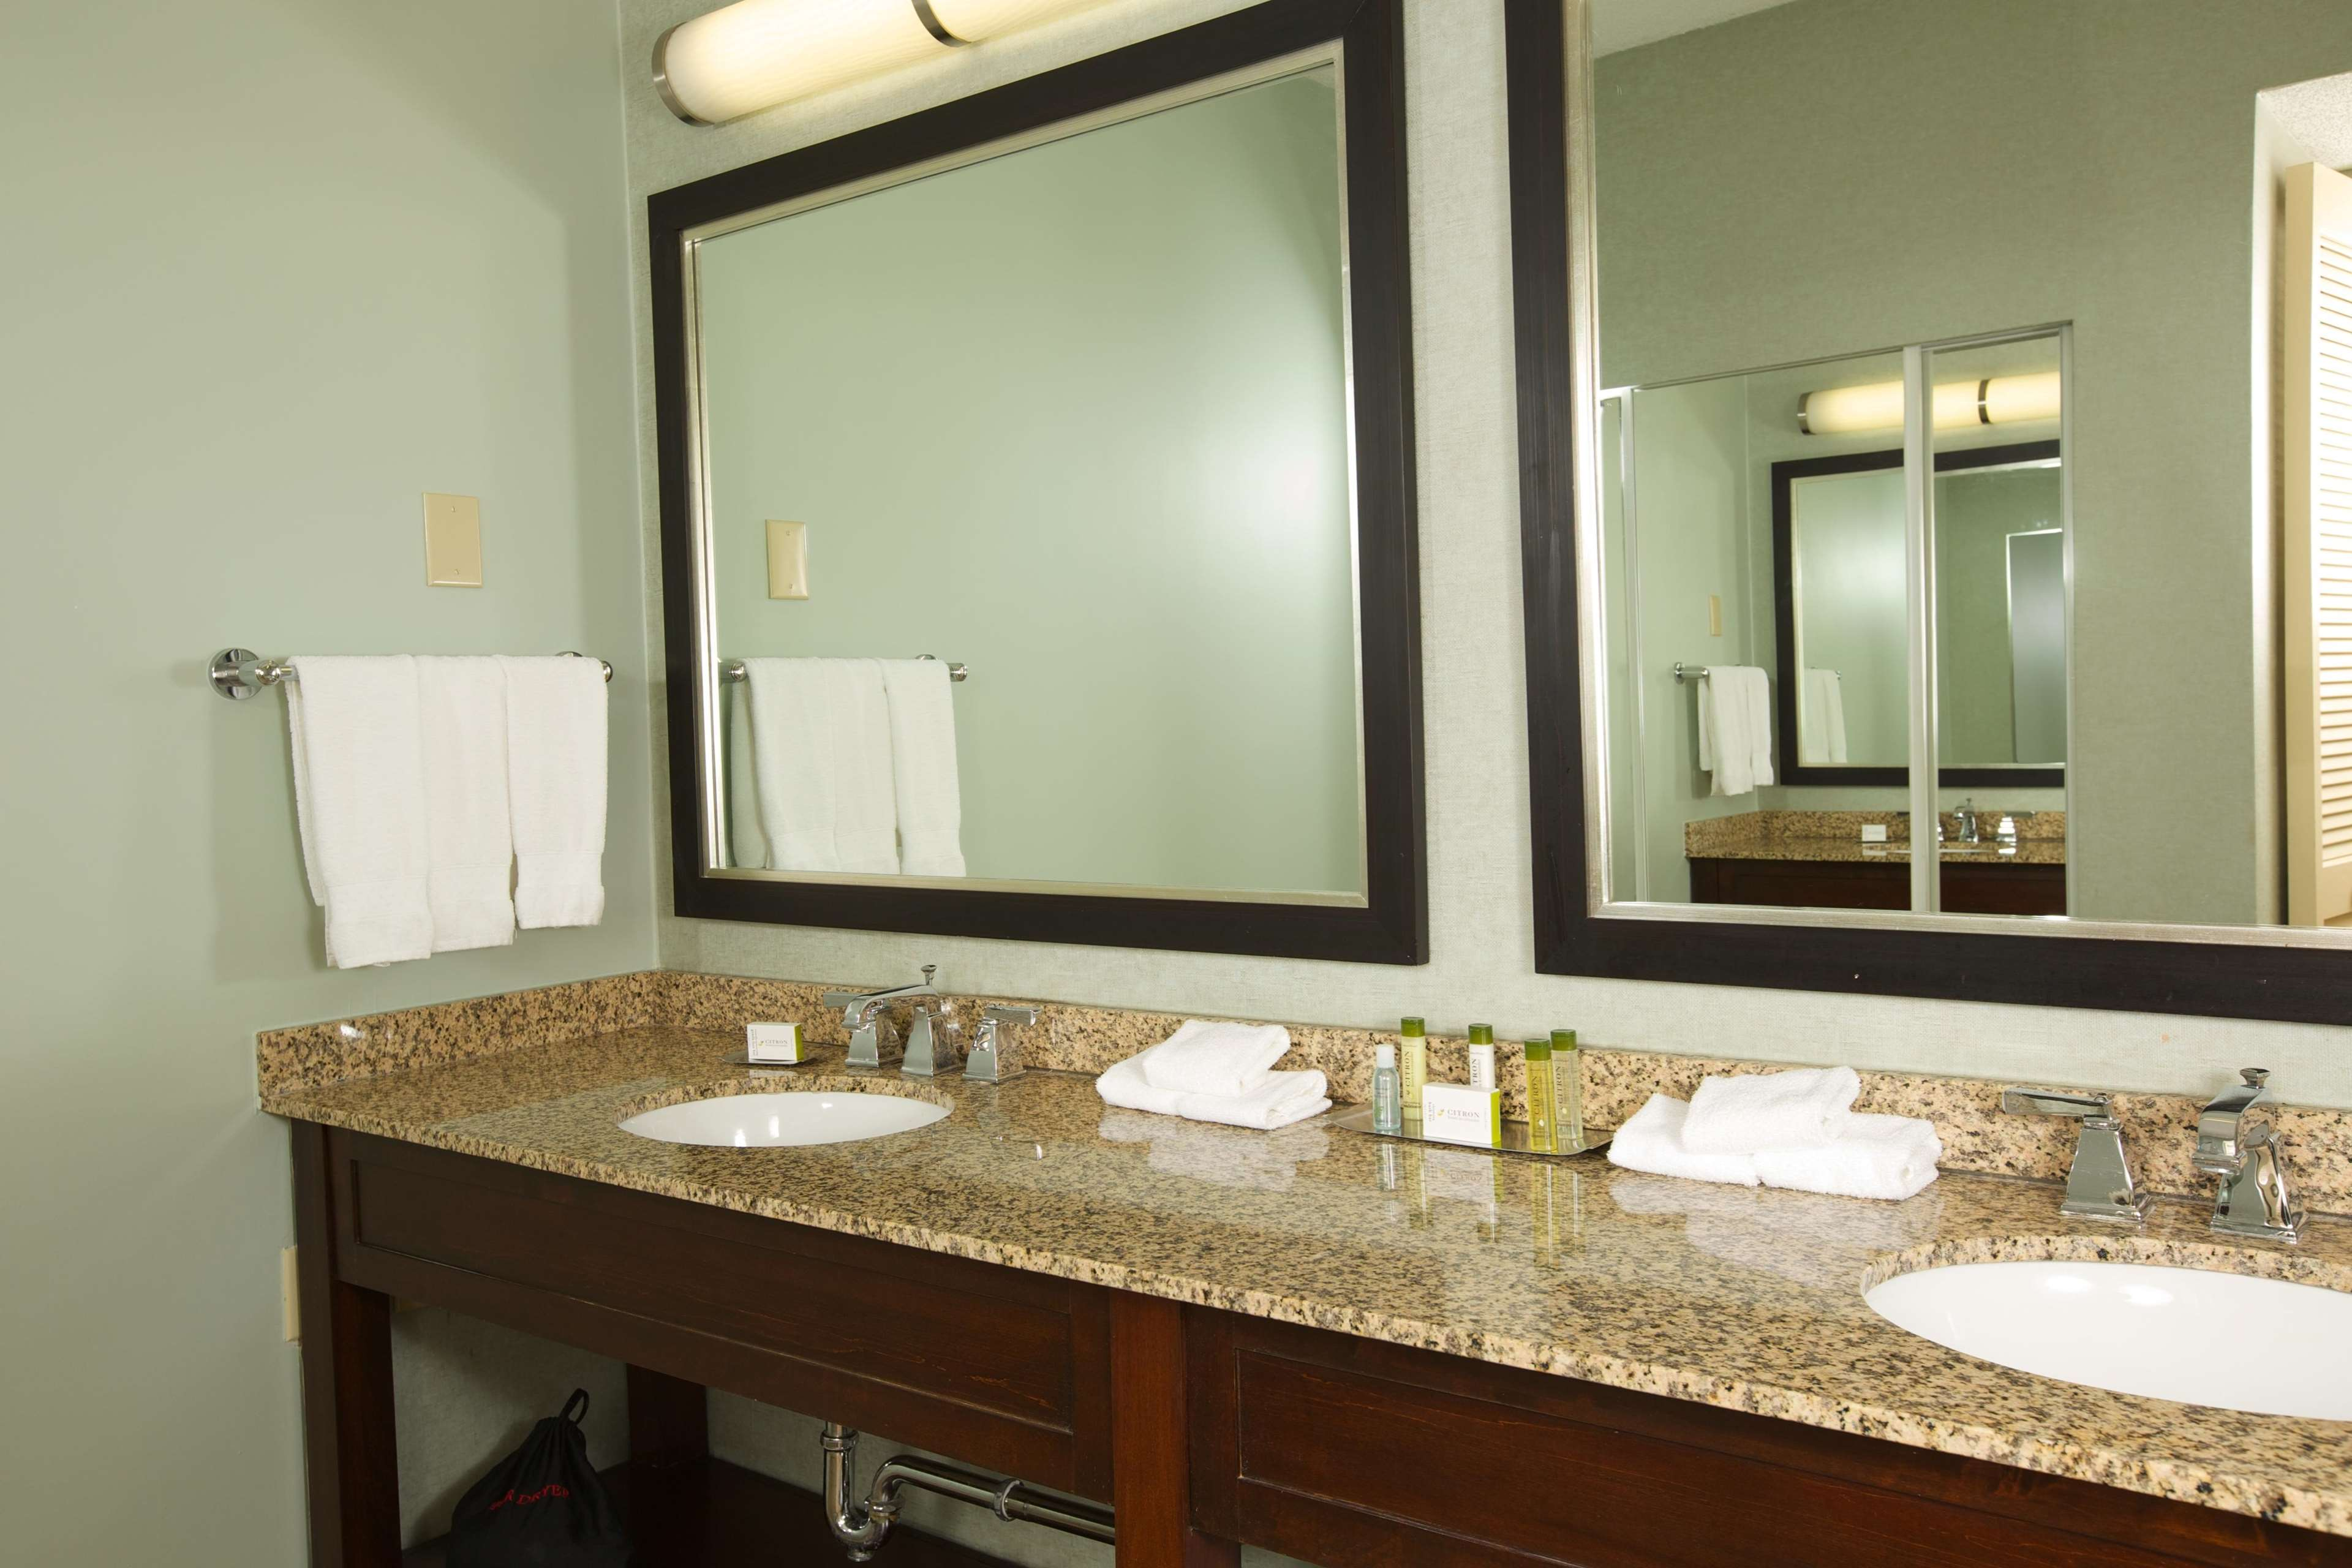 DoubleTree Suites by Hilton Hotel Raleigh - Durham image 14